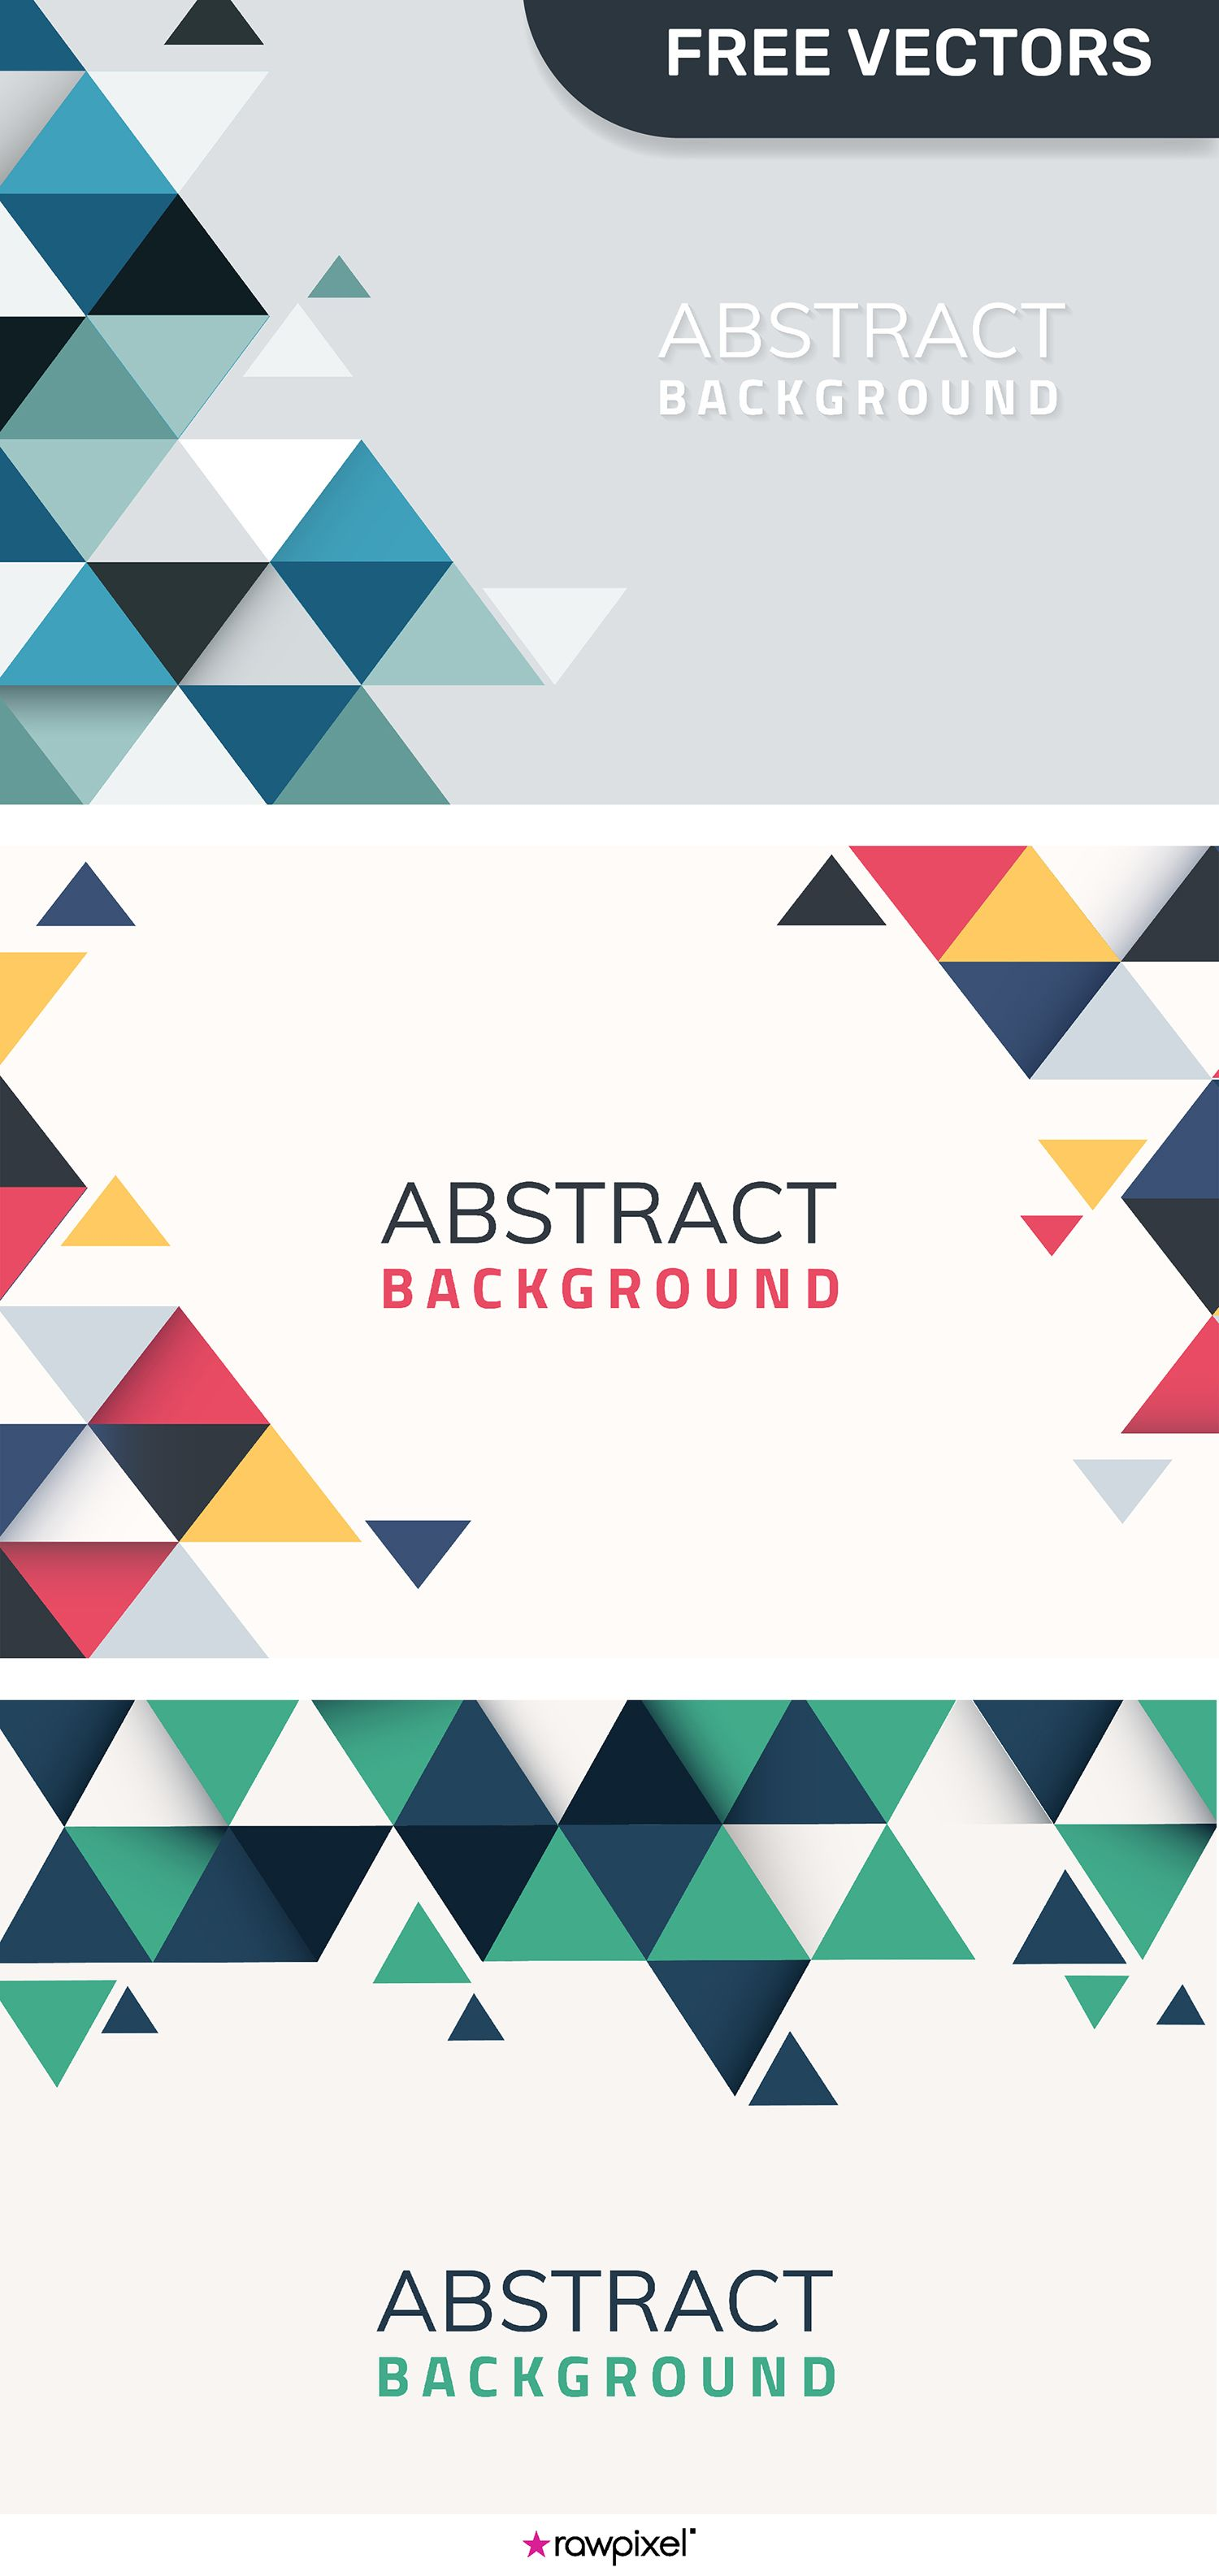 Download Free Royalty Free Geometric Abstract Backgrounds As Well